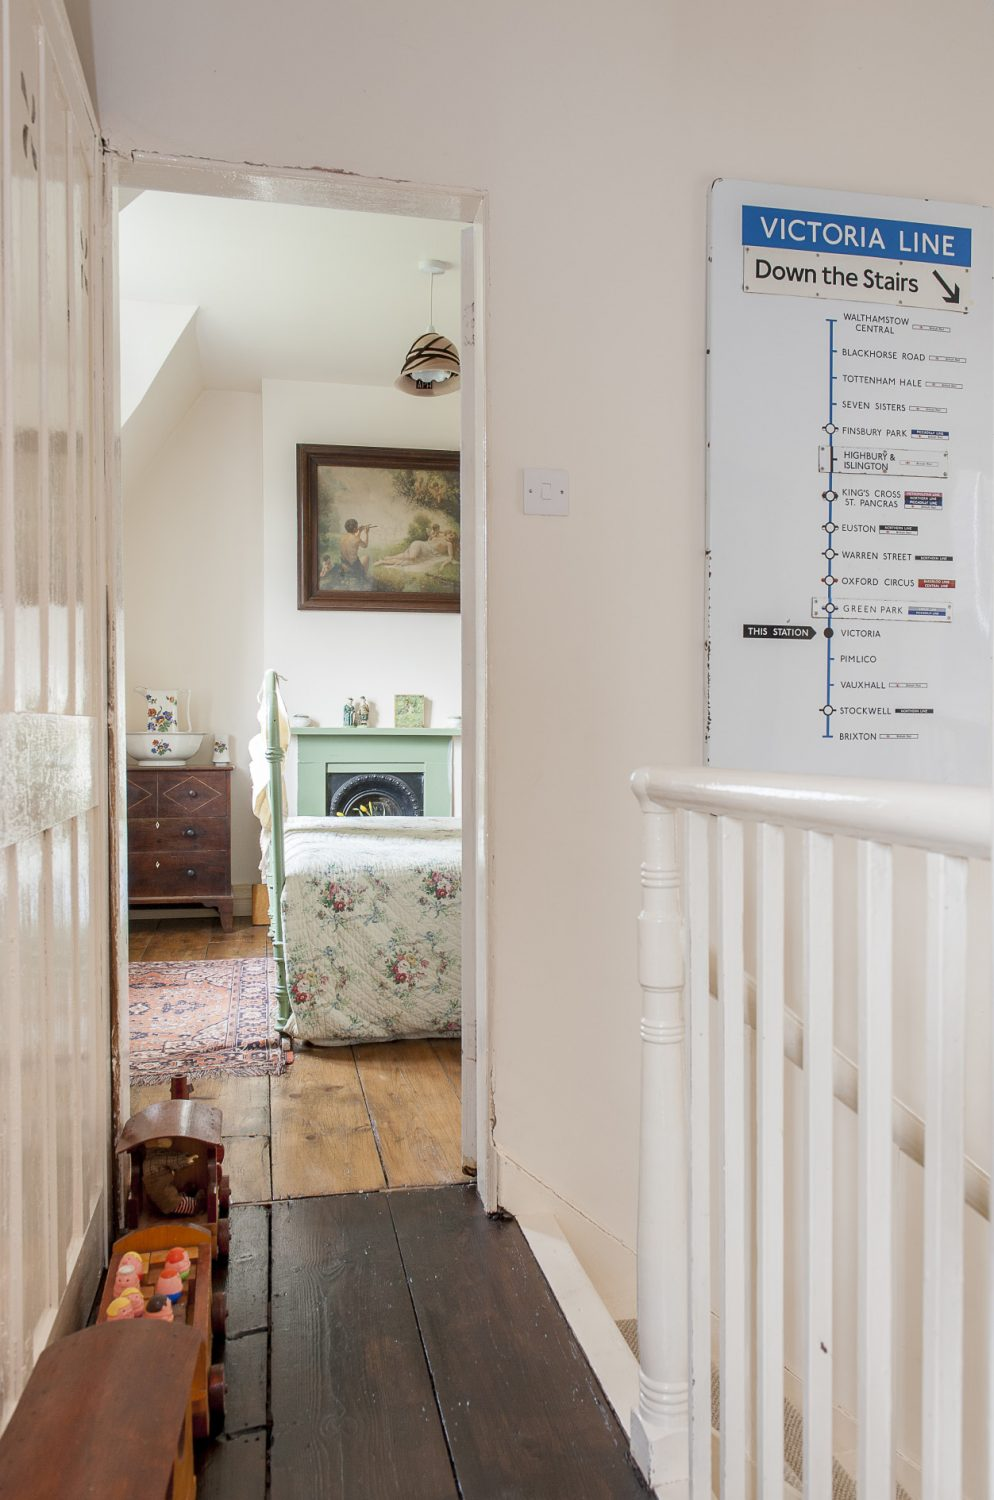 The wall outside the green bedroom features a sign from the Victoria Line, bought at a boot fair in tribute to Queen Victoria, who was monarch when the house was built